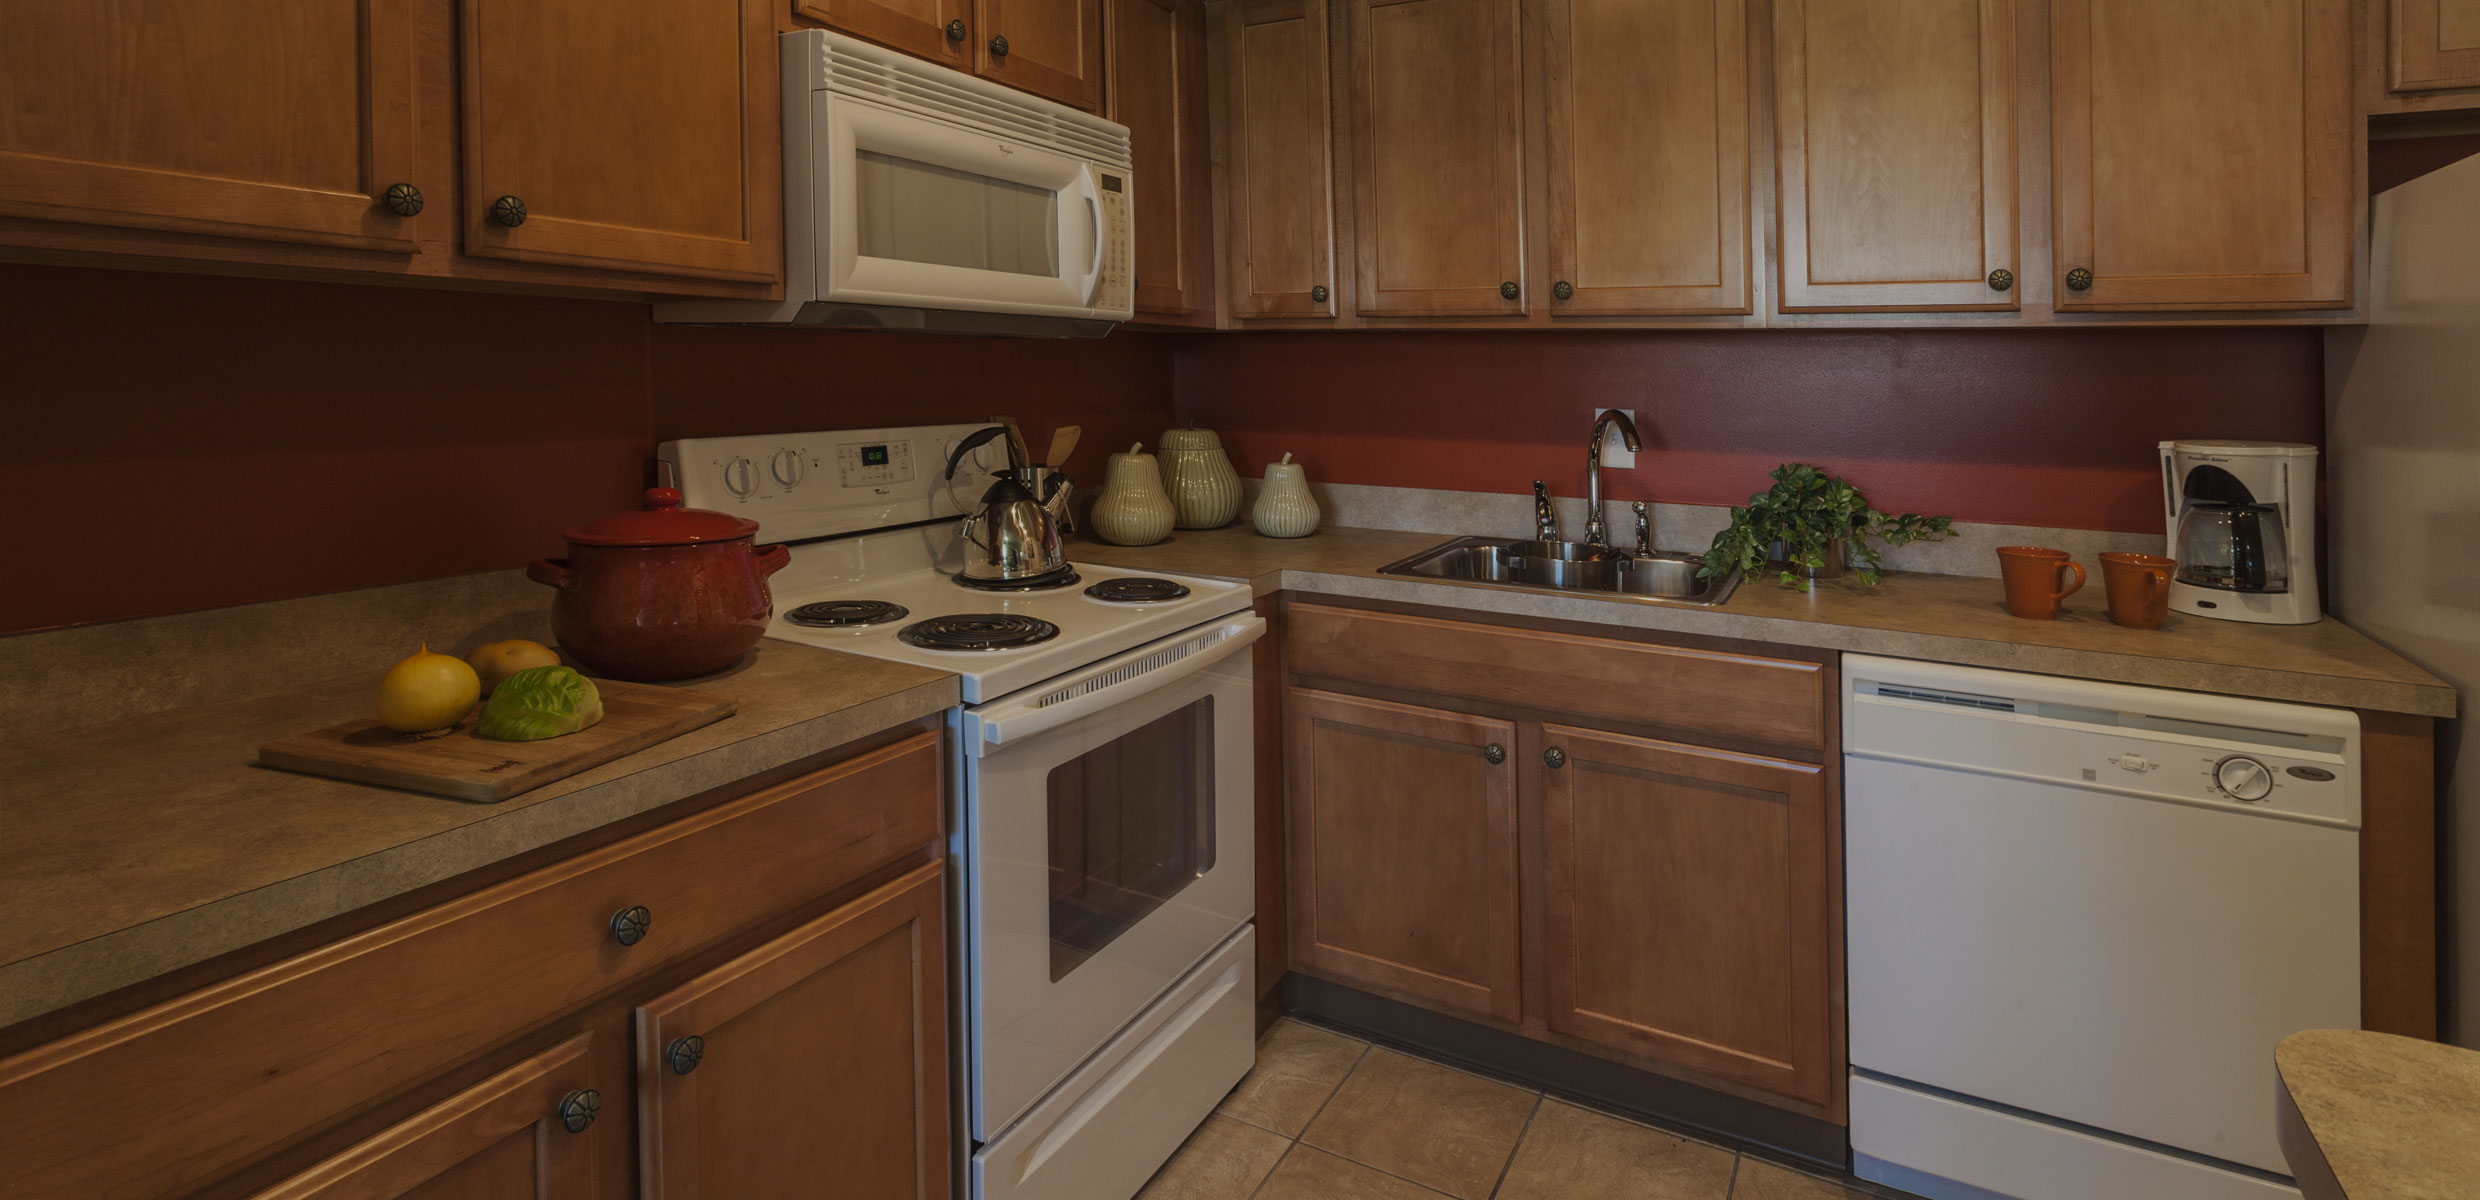 Kitchen at Townlines Townhomes